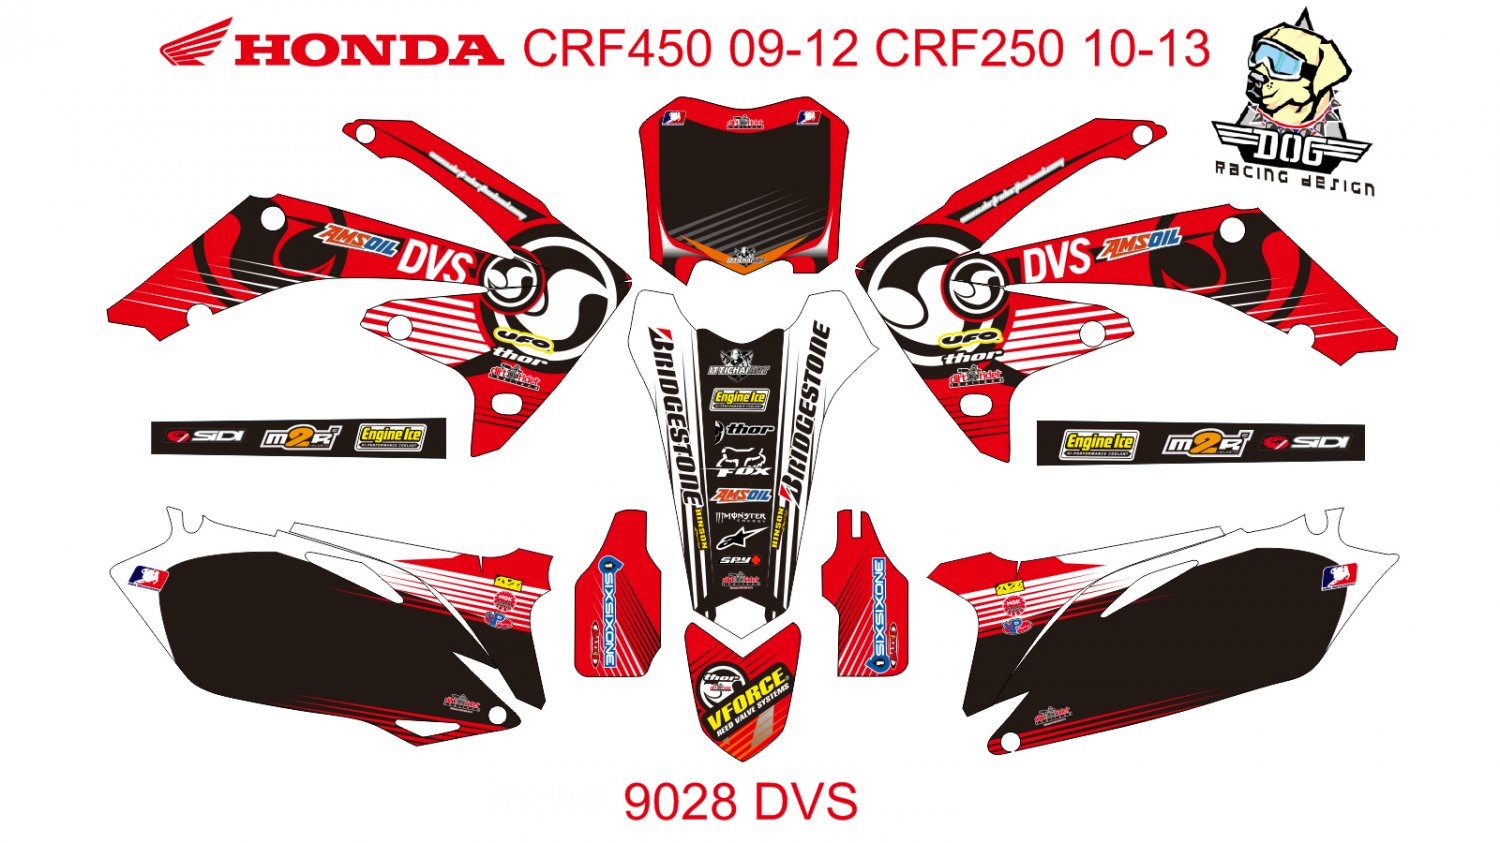 HONDA CRF 450 2009-2012 CRF 250 2010-2013 DECAL KIT CODE.9028